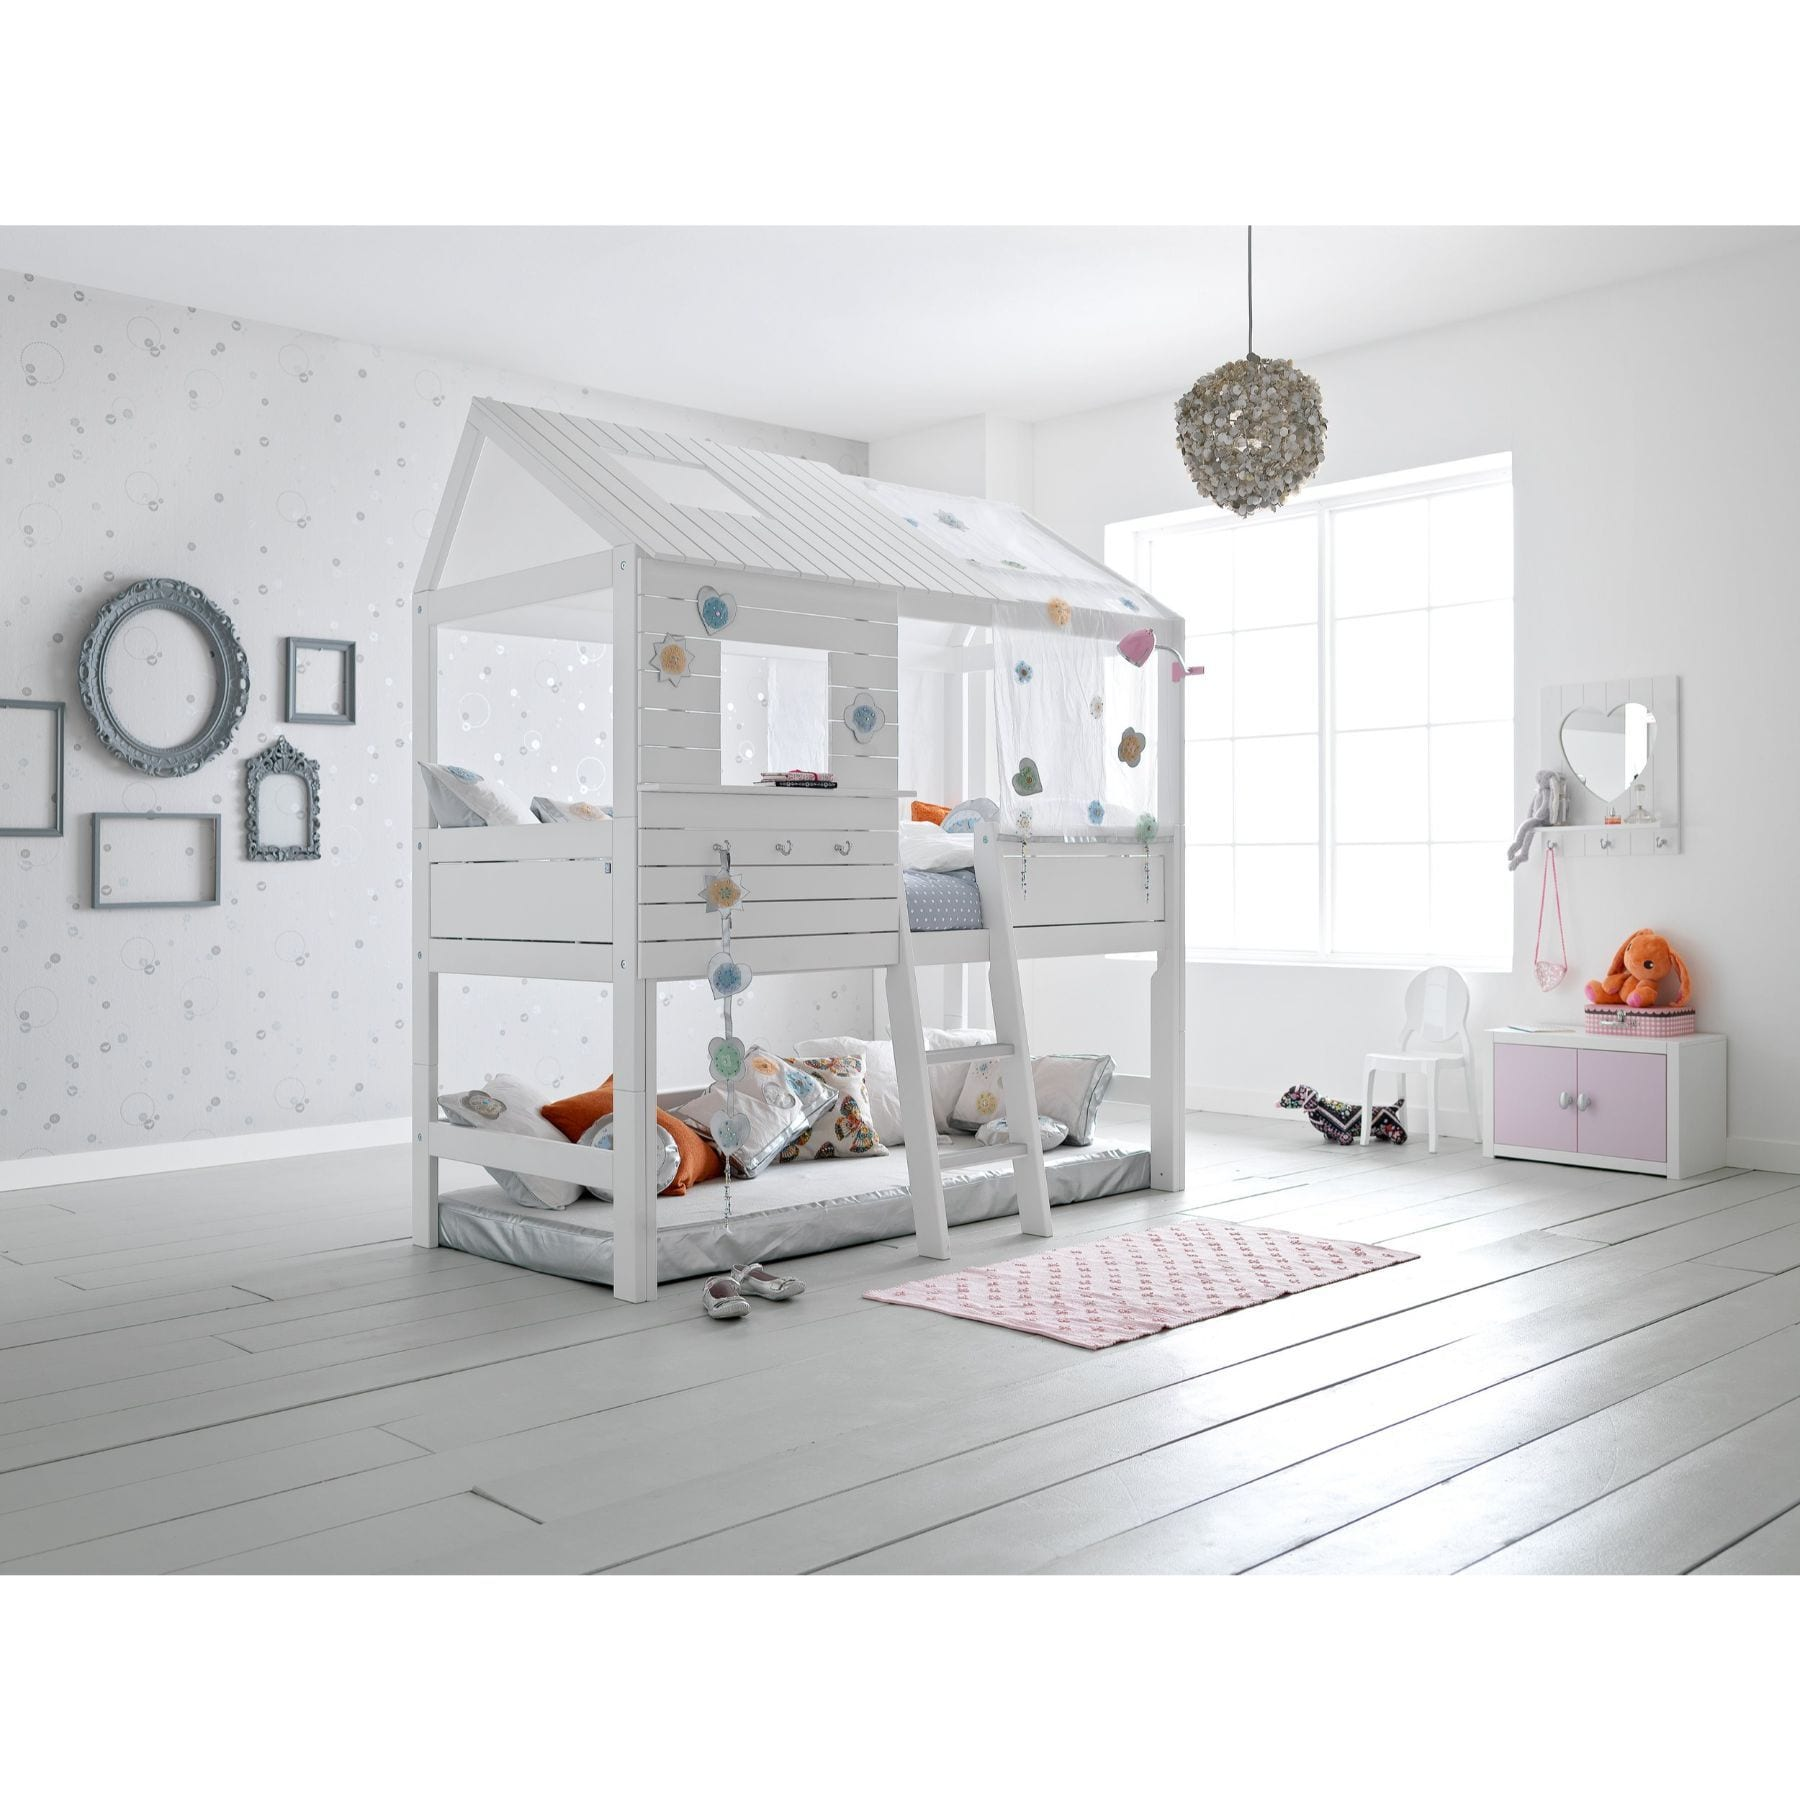 Lifetime Silversparkle Semi-High Hut Bed